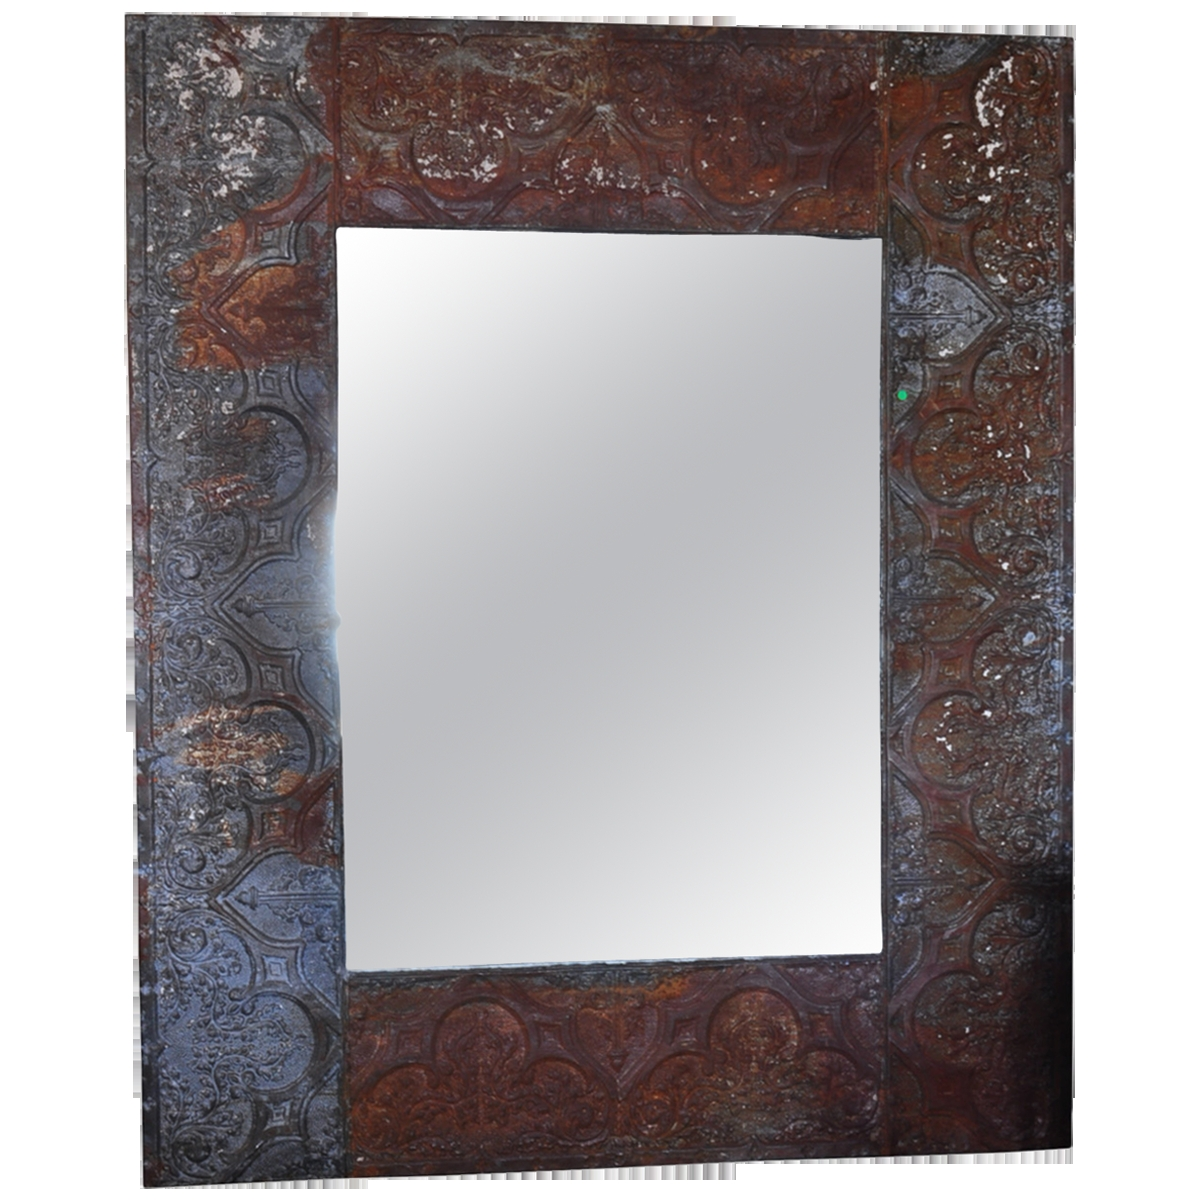 Viyet Designer Furniture Accessories Vintage Large Mirror In With Regard To Vintage Large Mirror (Image 15 of 15)